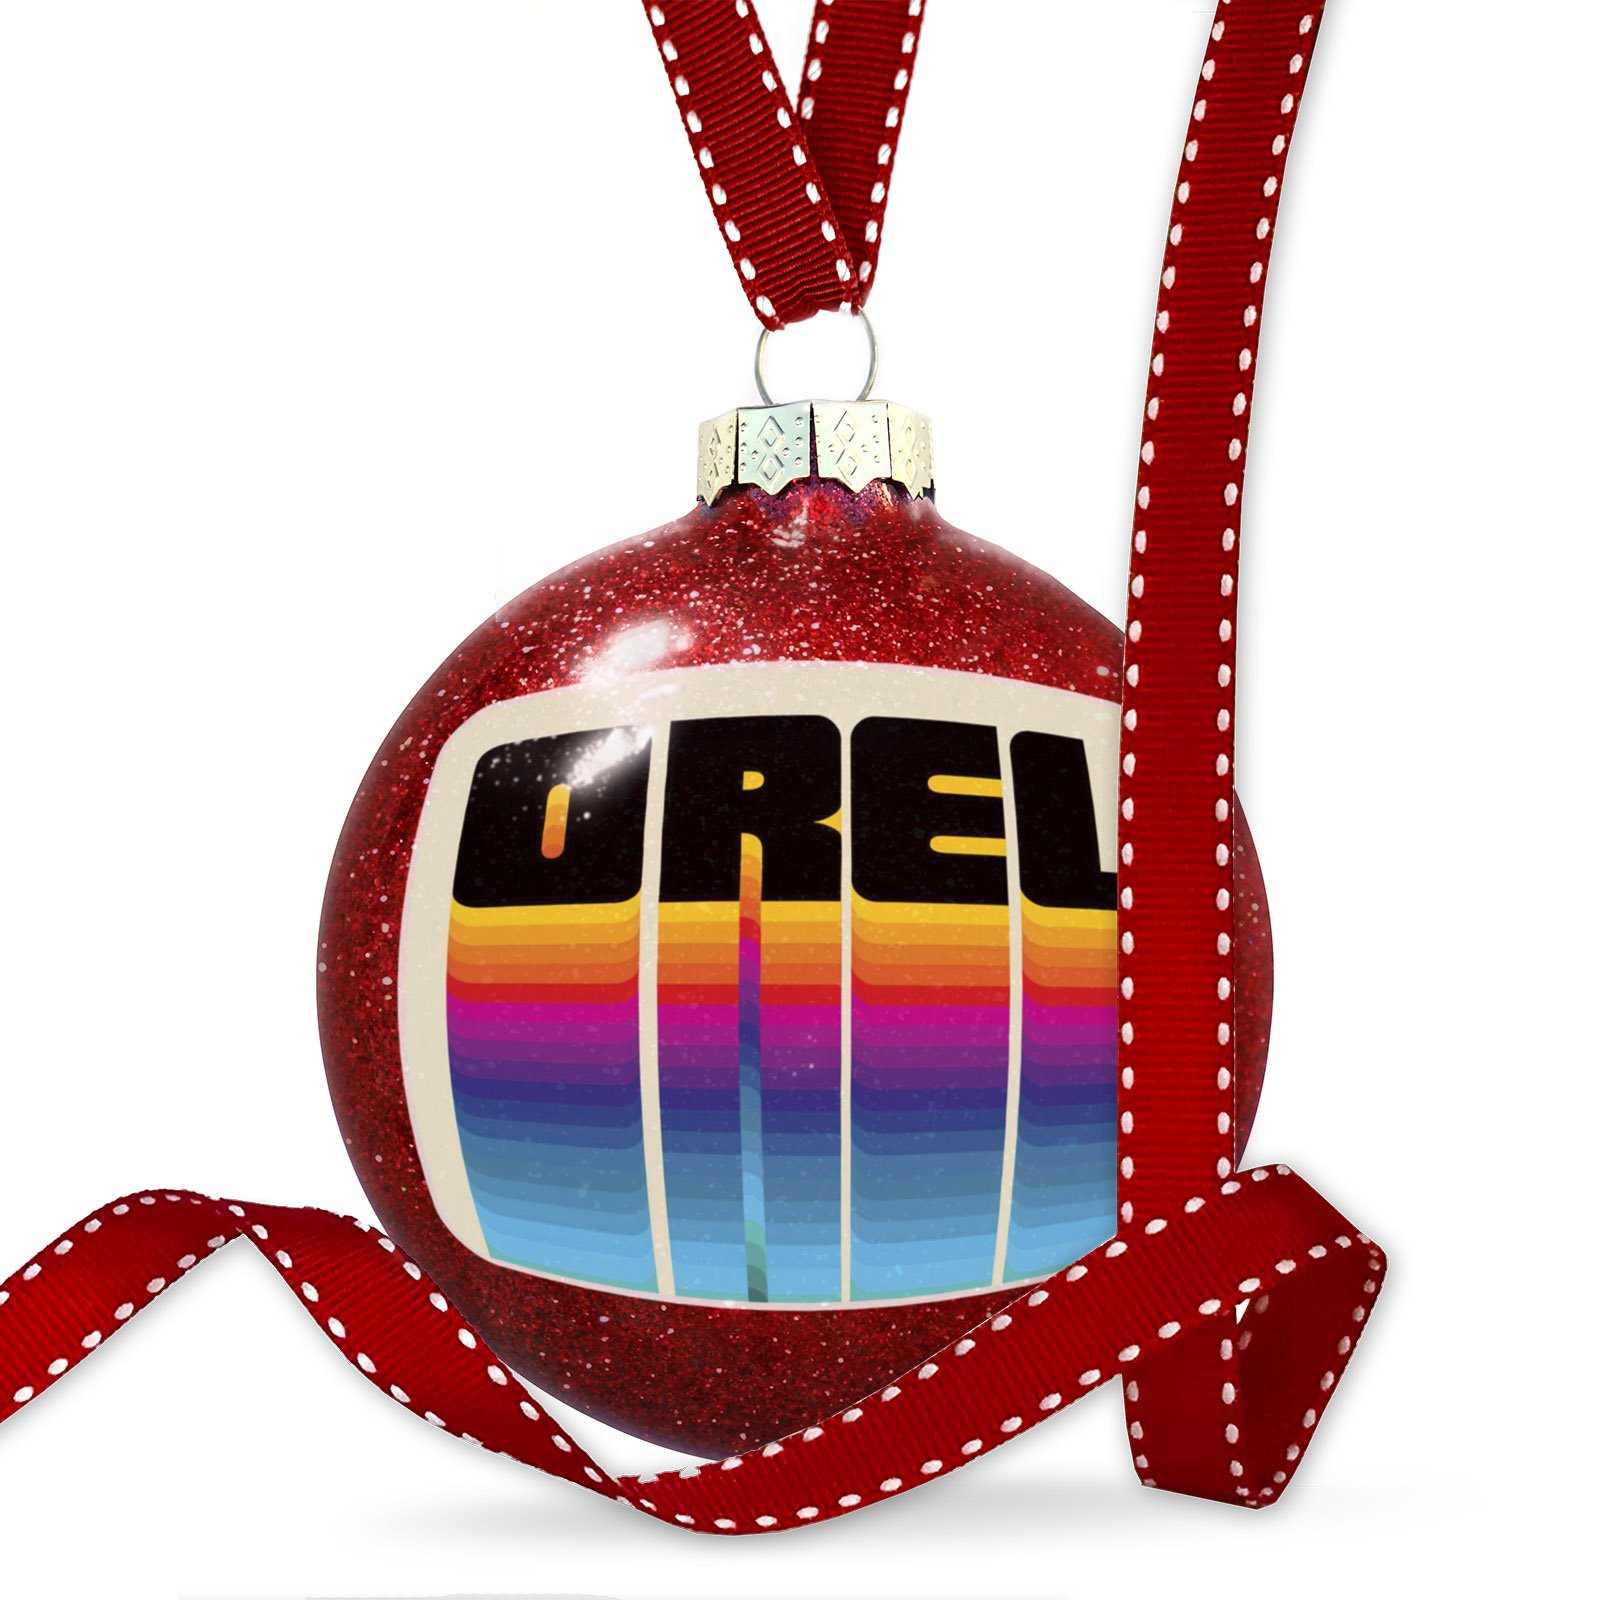 Christmas Decoration Retro Cites States Countries Orel Ornament by NEONBLOND (Image #1)